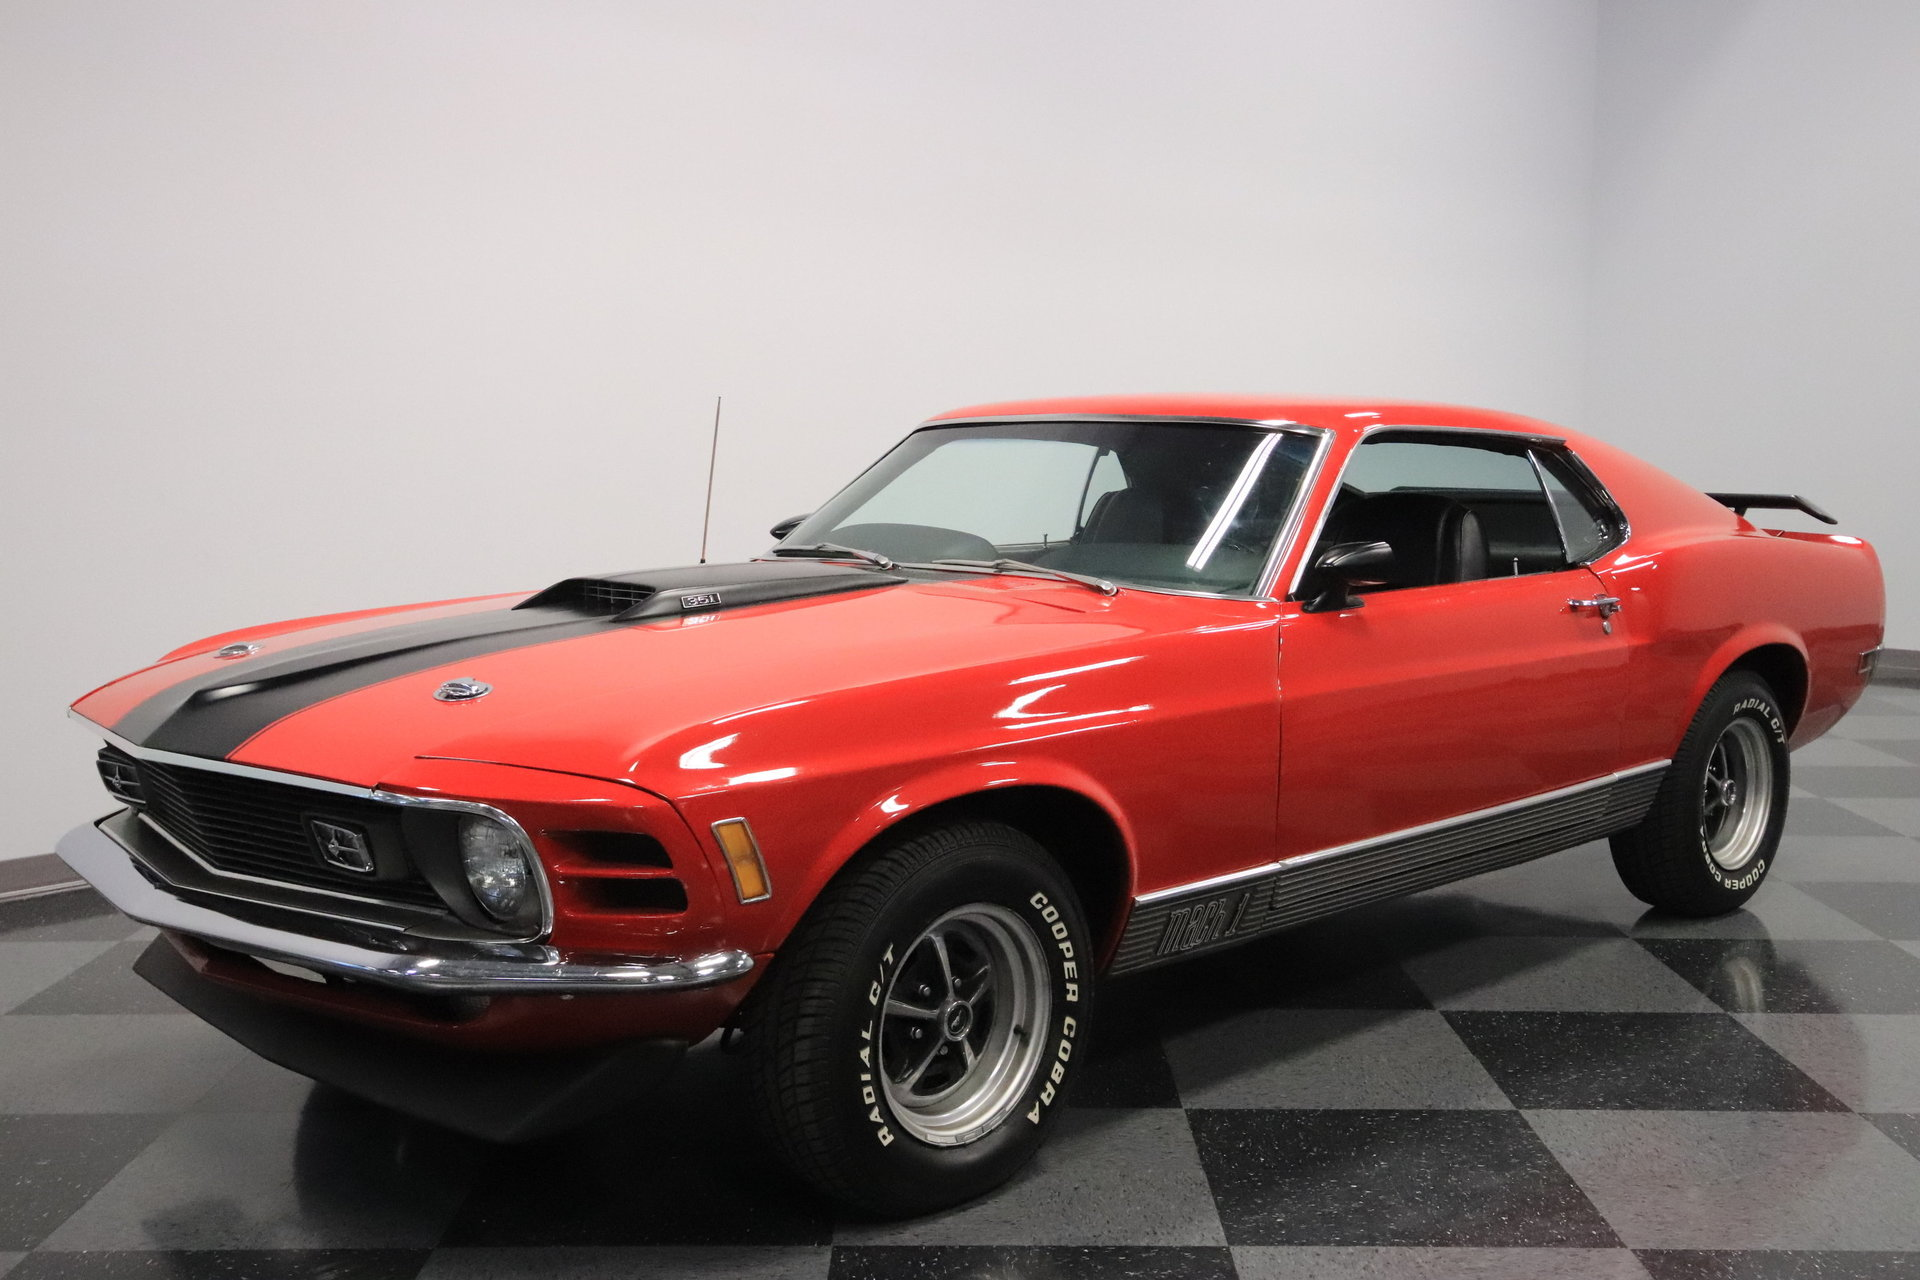 1970 Ford Mustang Streetside Classics The Nations Trusted Mach 1 View 360